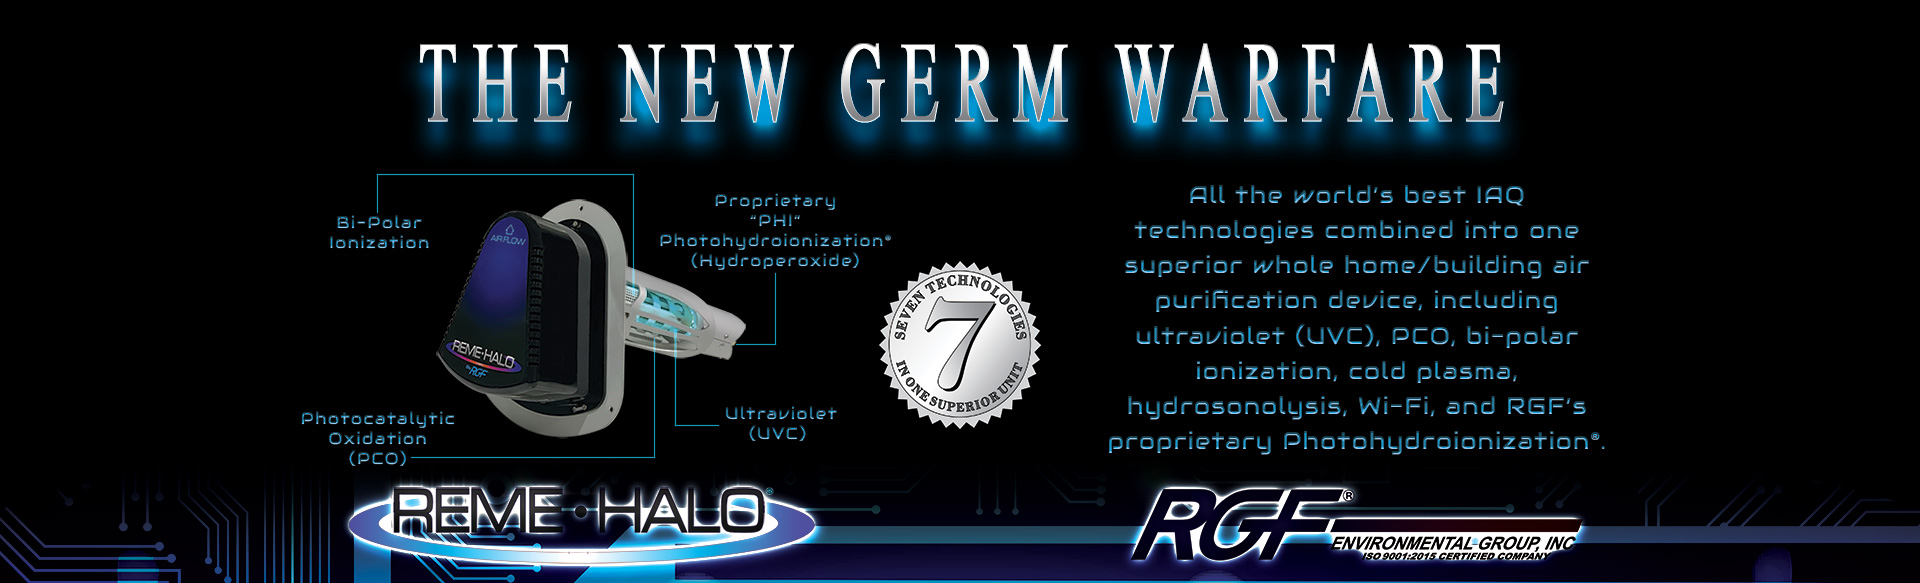 REME HALO Germ Warfare slider